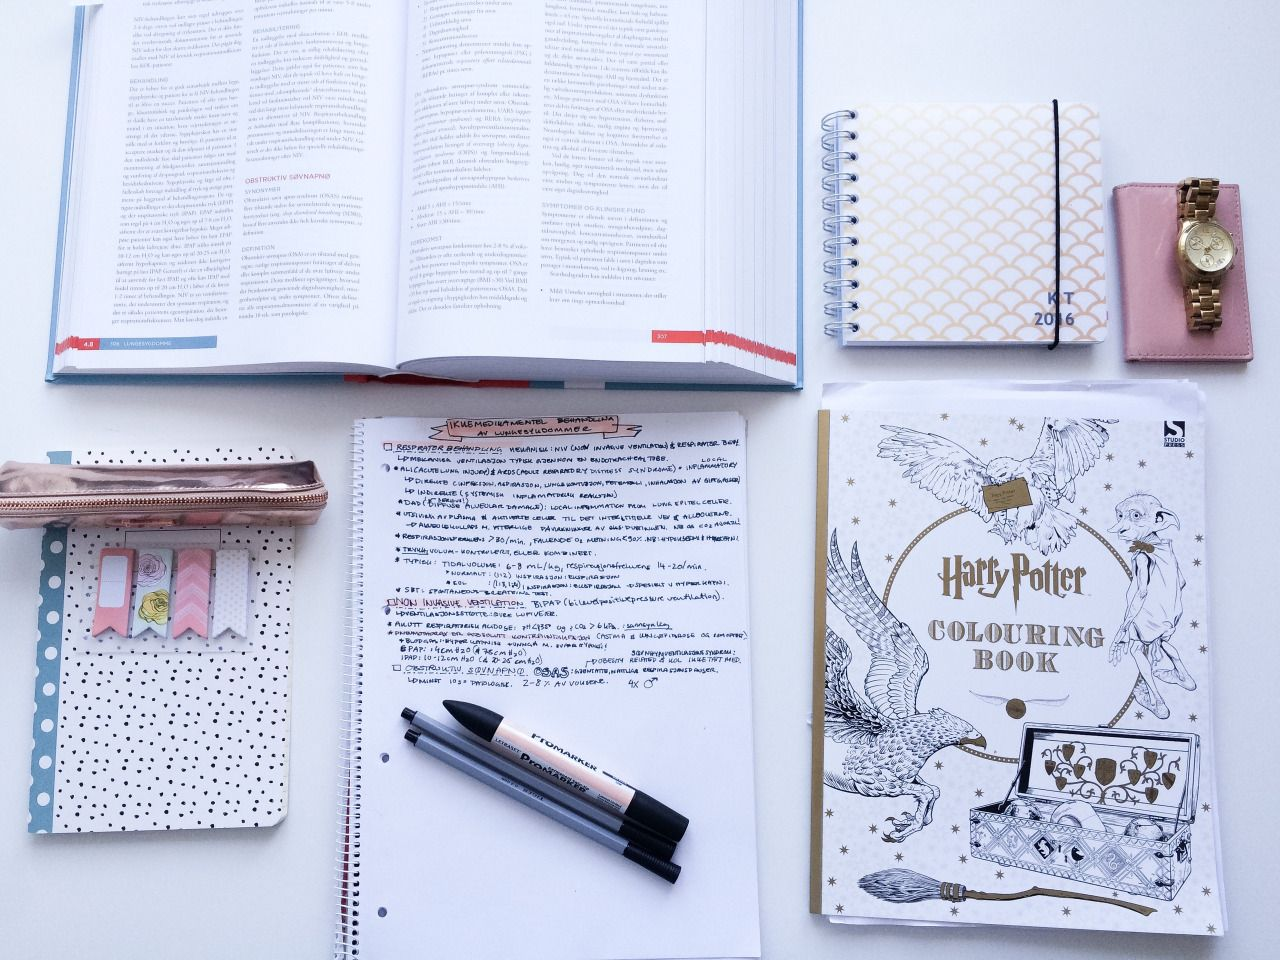 Study Diary Of A Medstudent Photo